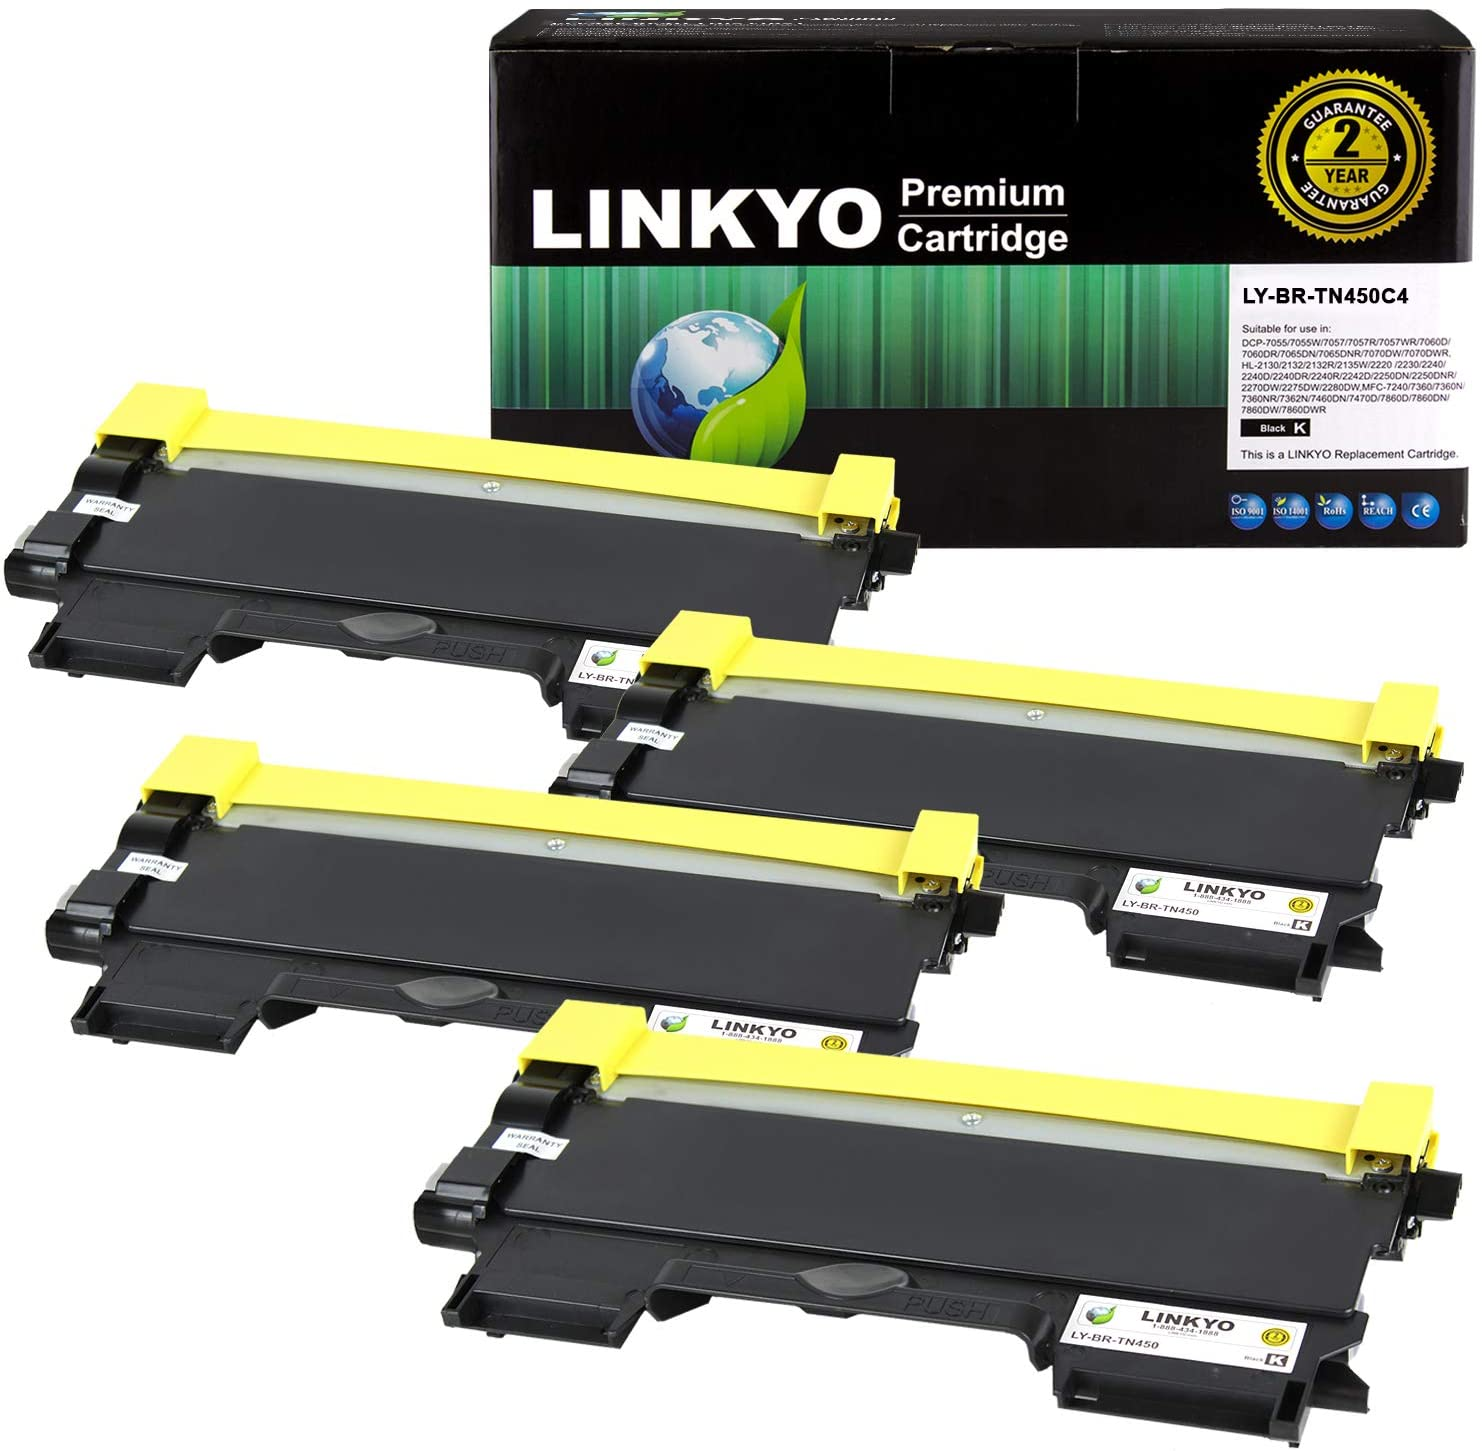 LINKYO Compatible Toner Cartridge Replacement for Brother TN450 TN-450 TN420 (Black, High Yield, 4-Pack)